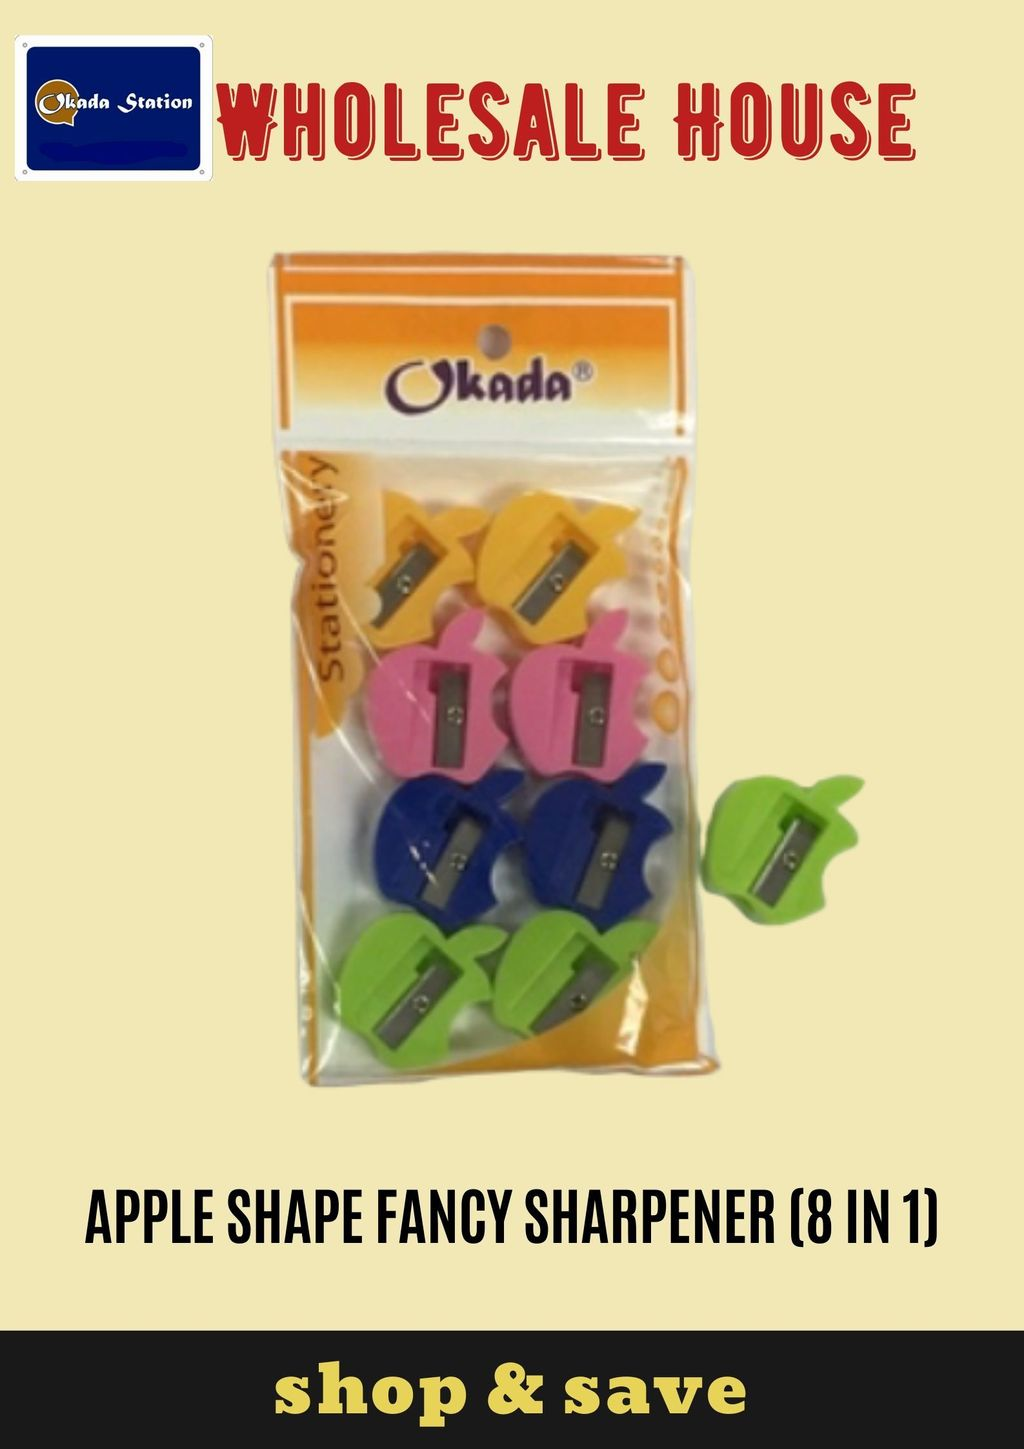 Copy of Copy of One Stop Office Supply-3.jpg